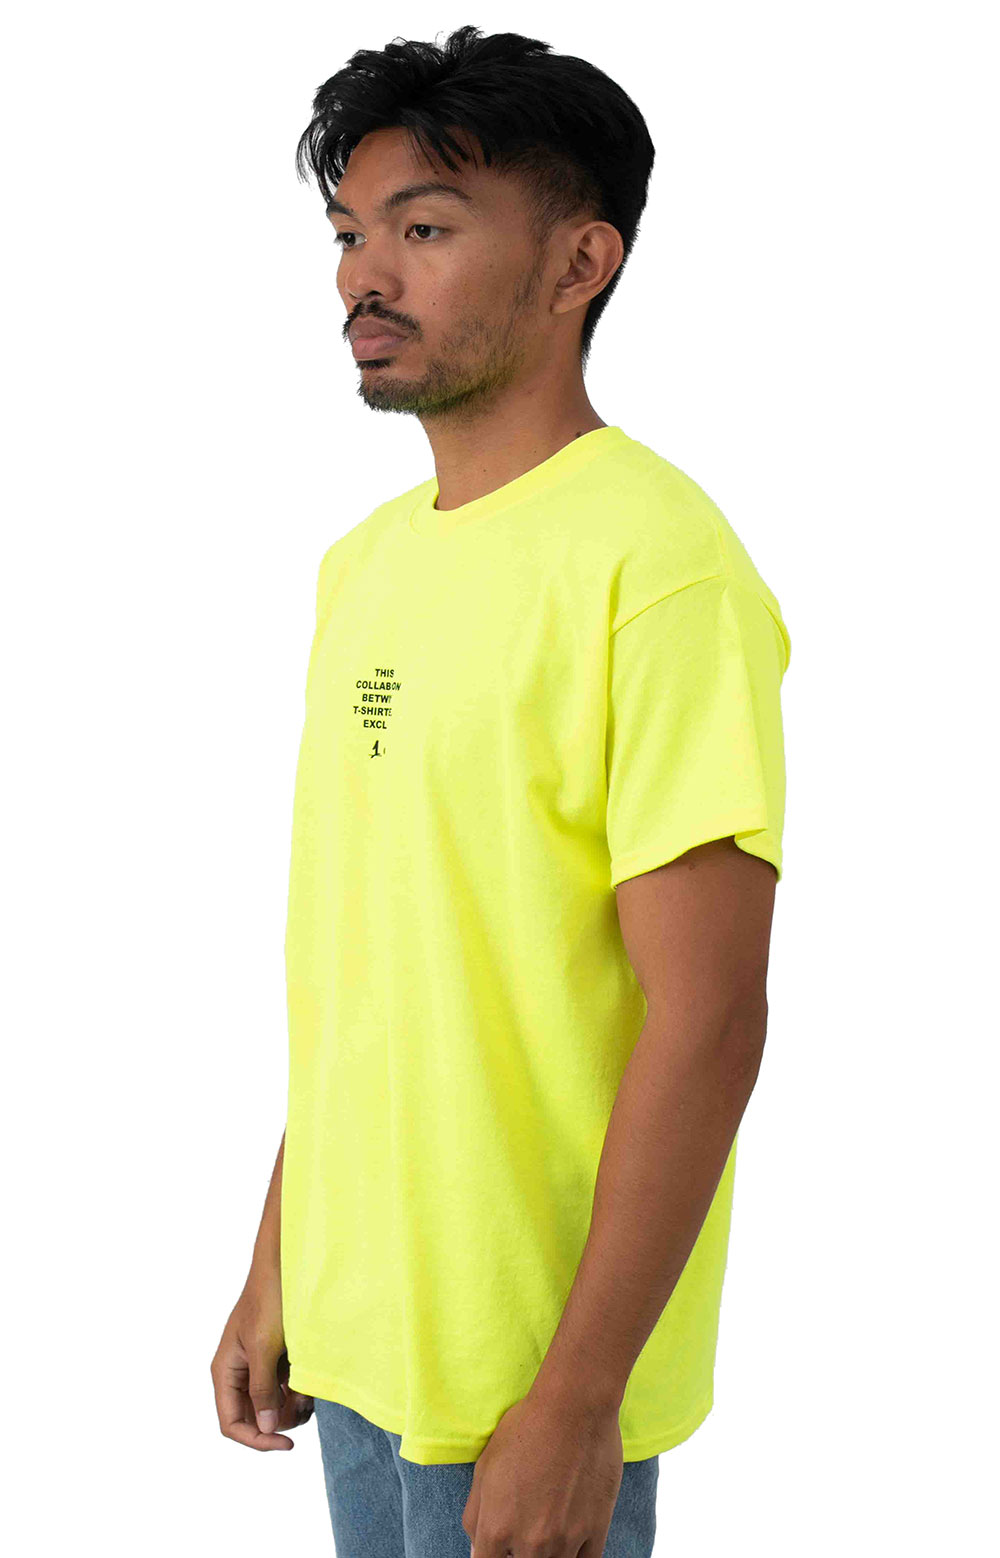 Collab 2.0 SS T-Shirt - Neon Yellow  2